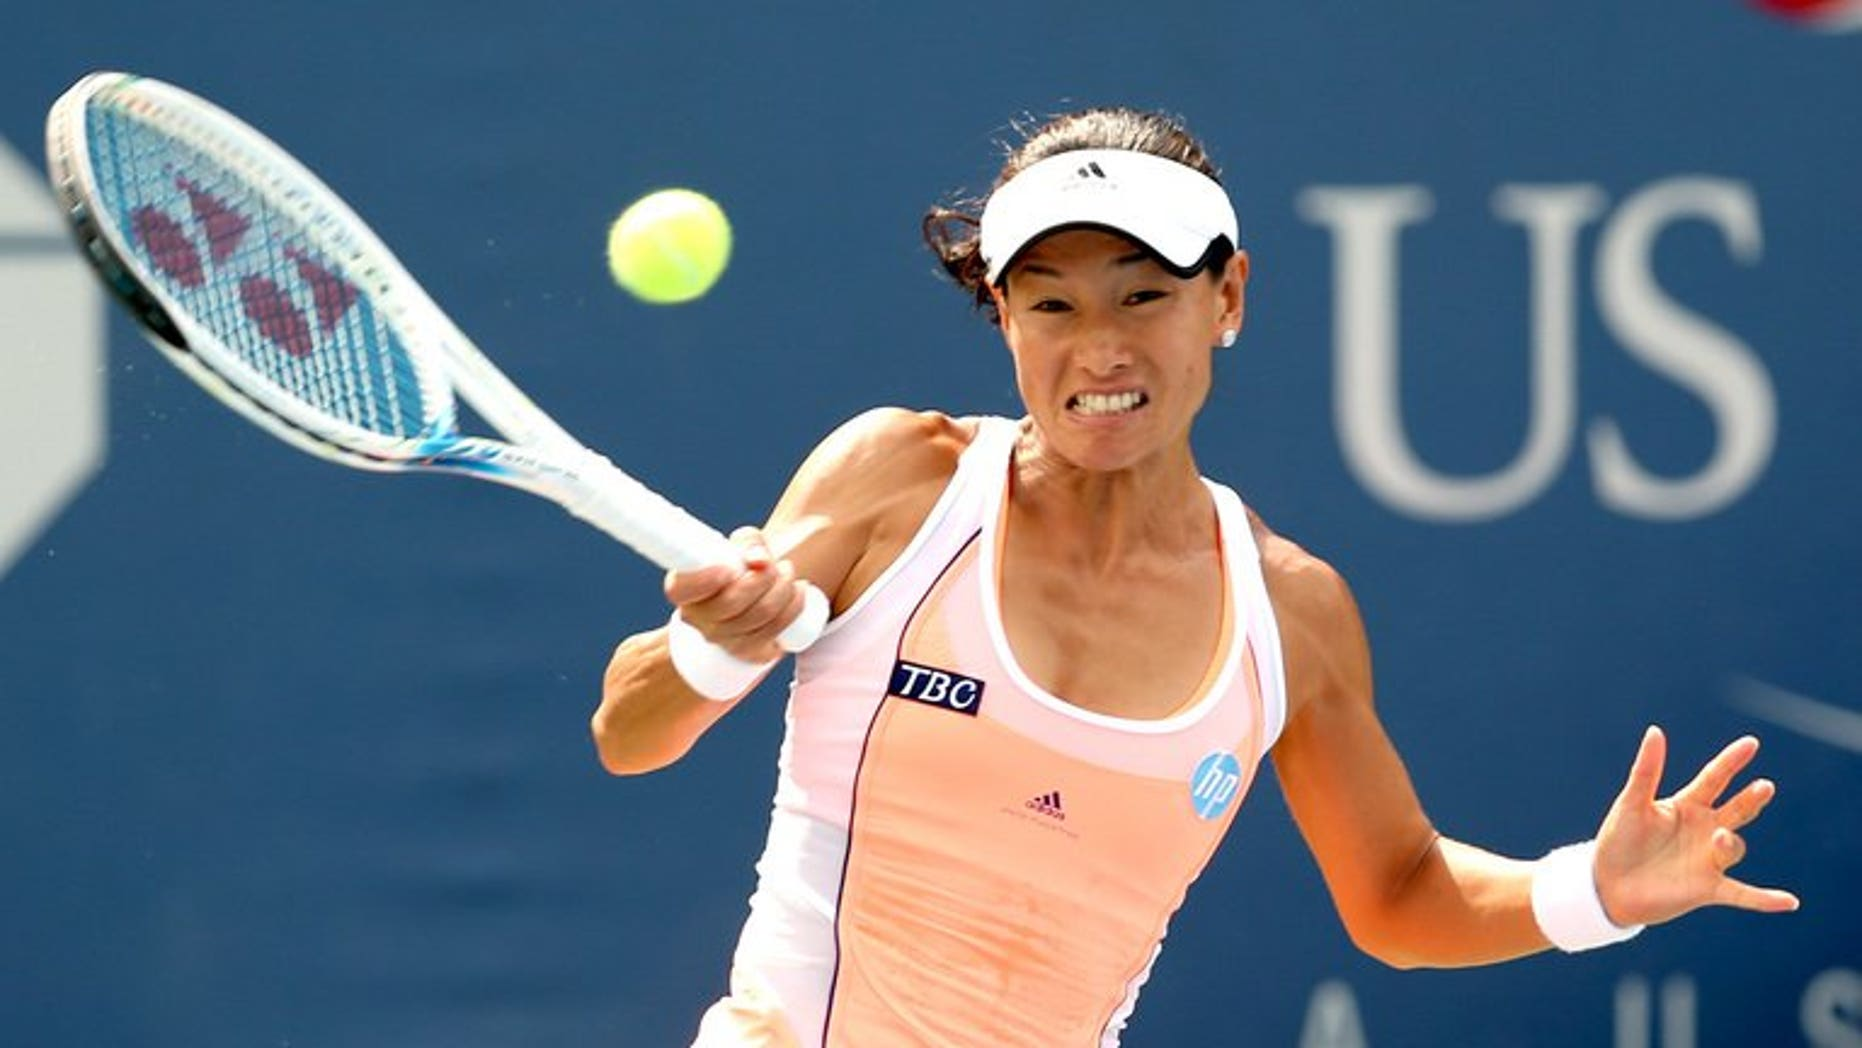 Kimiko Date-Krumm returns a shot during the US Open in New York on August 28. The 42-year-old Japanese veteran stunned Russian second seed Maria Kirilenko to reach the WTA Korea Open quarter-finals on Thursday.